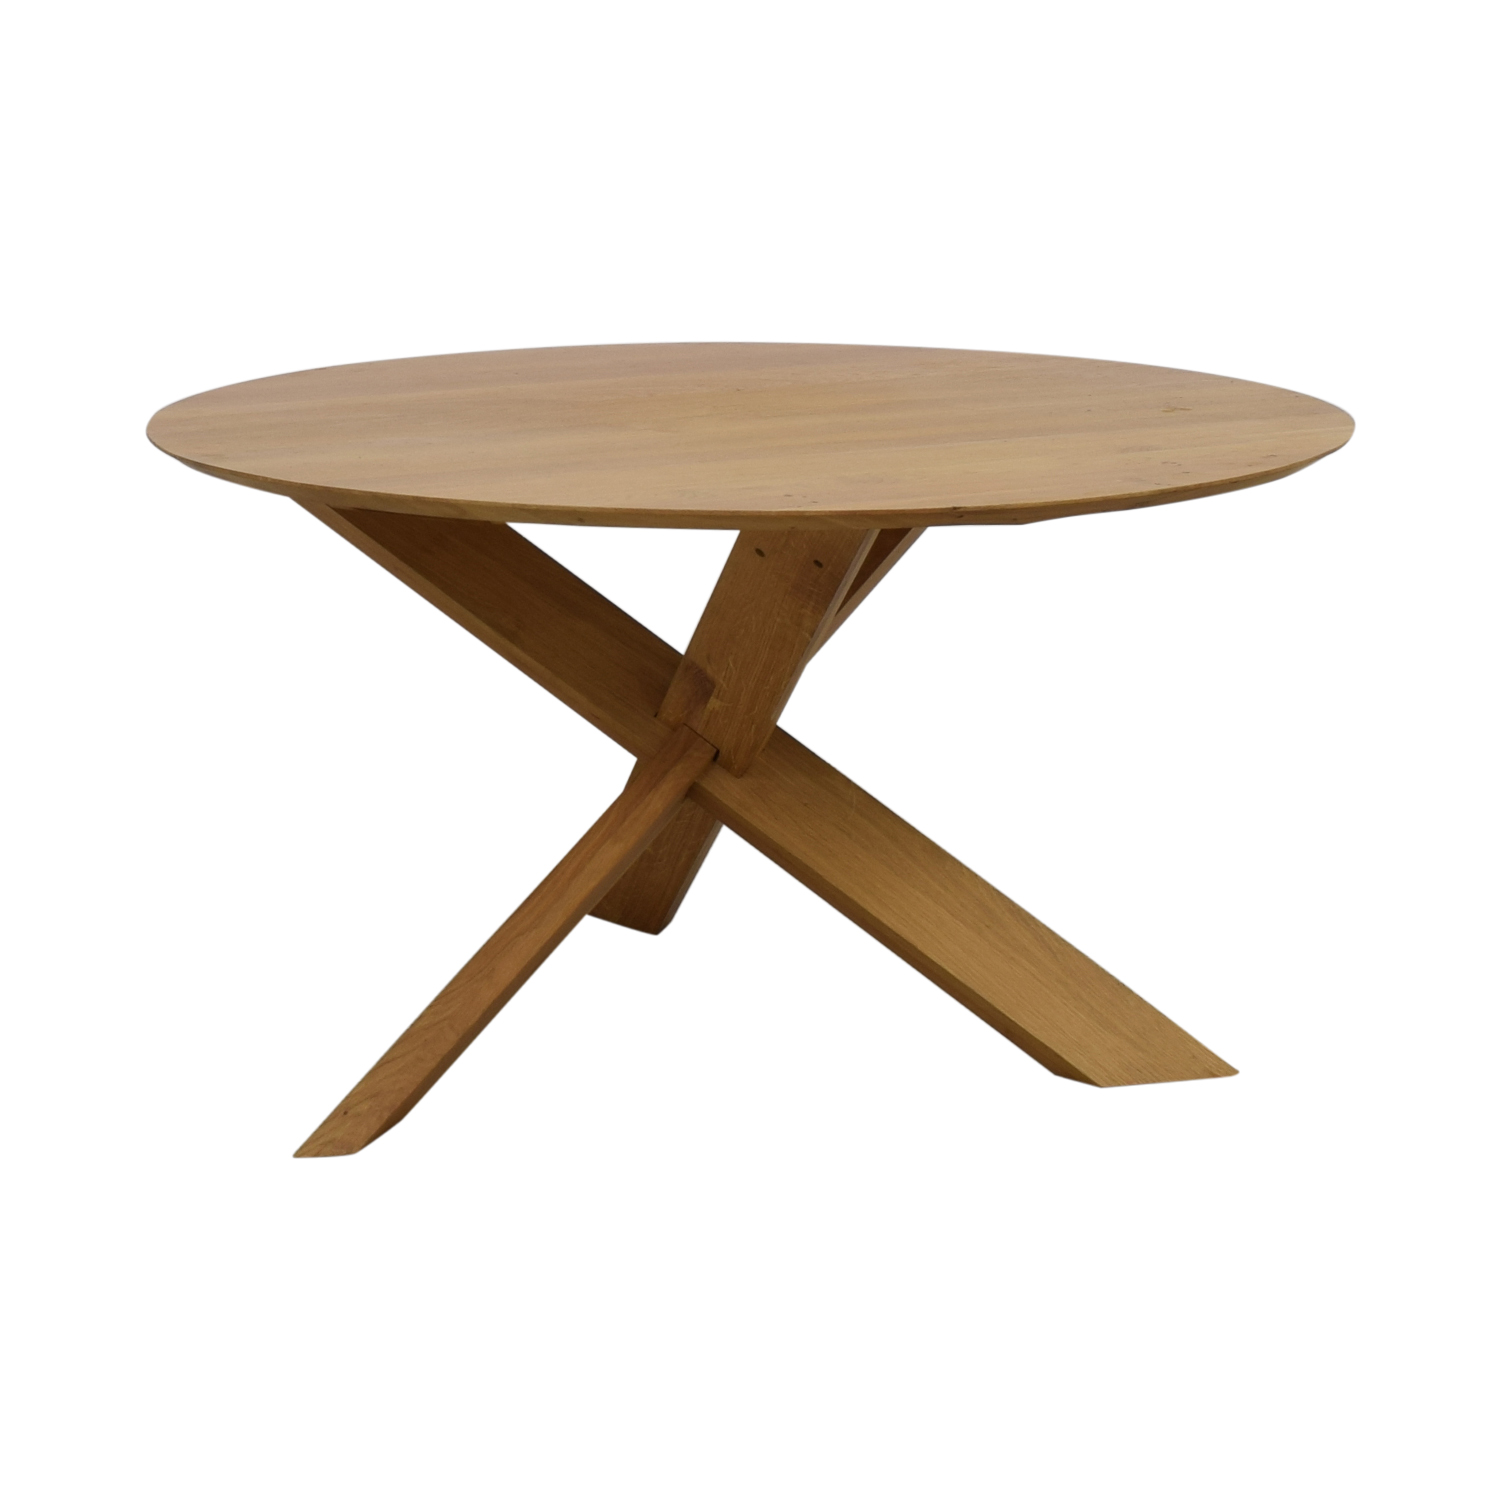 Ethnicraft Circle Dining Table / Tables